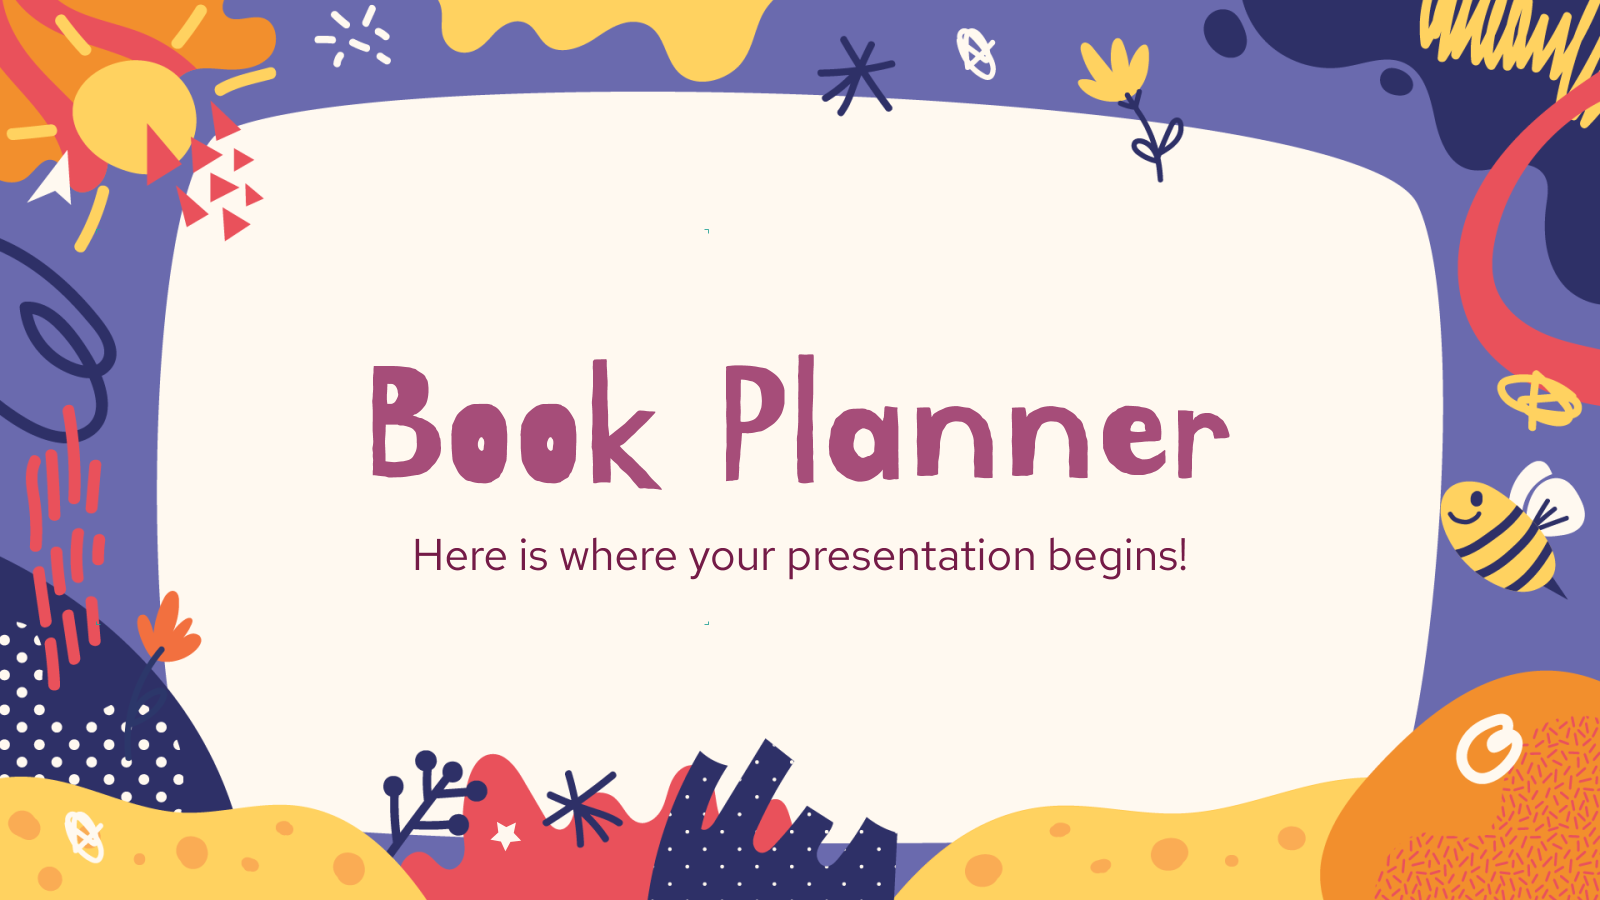 Elementary Level - Book Planner presentation template